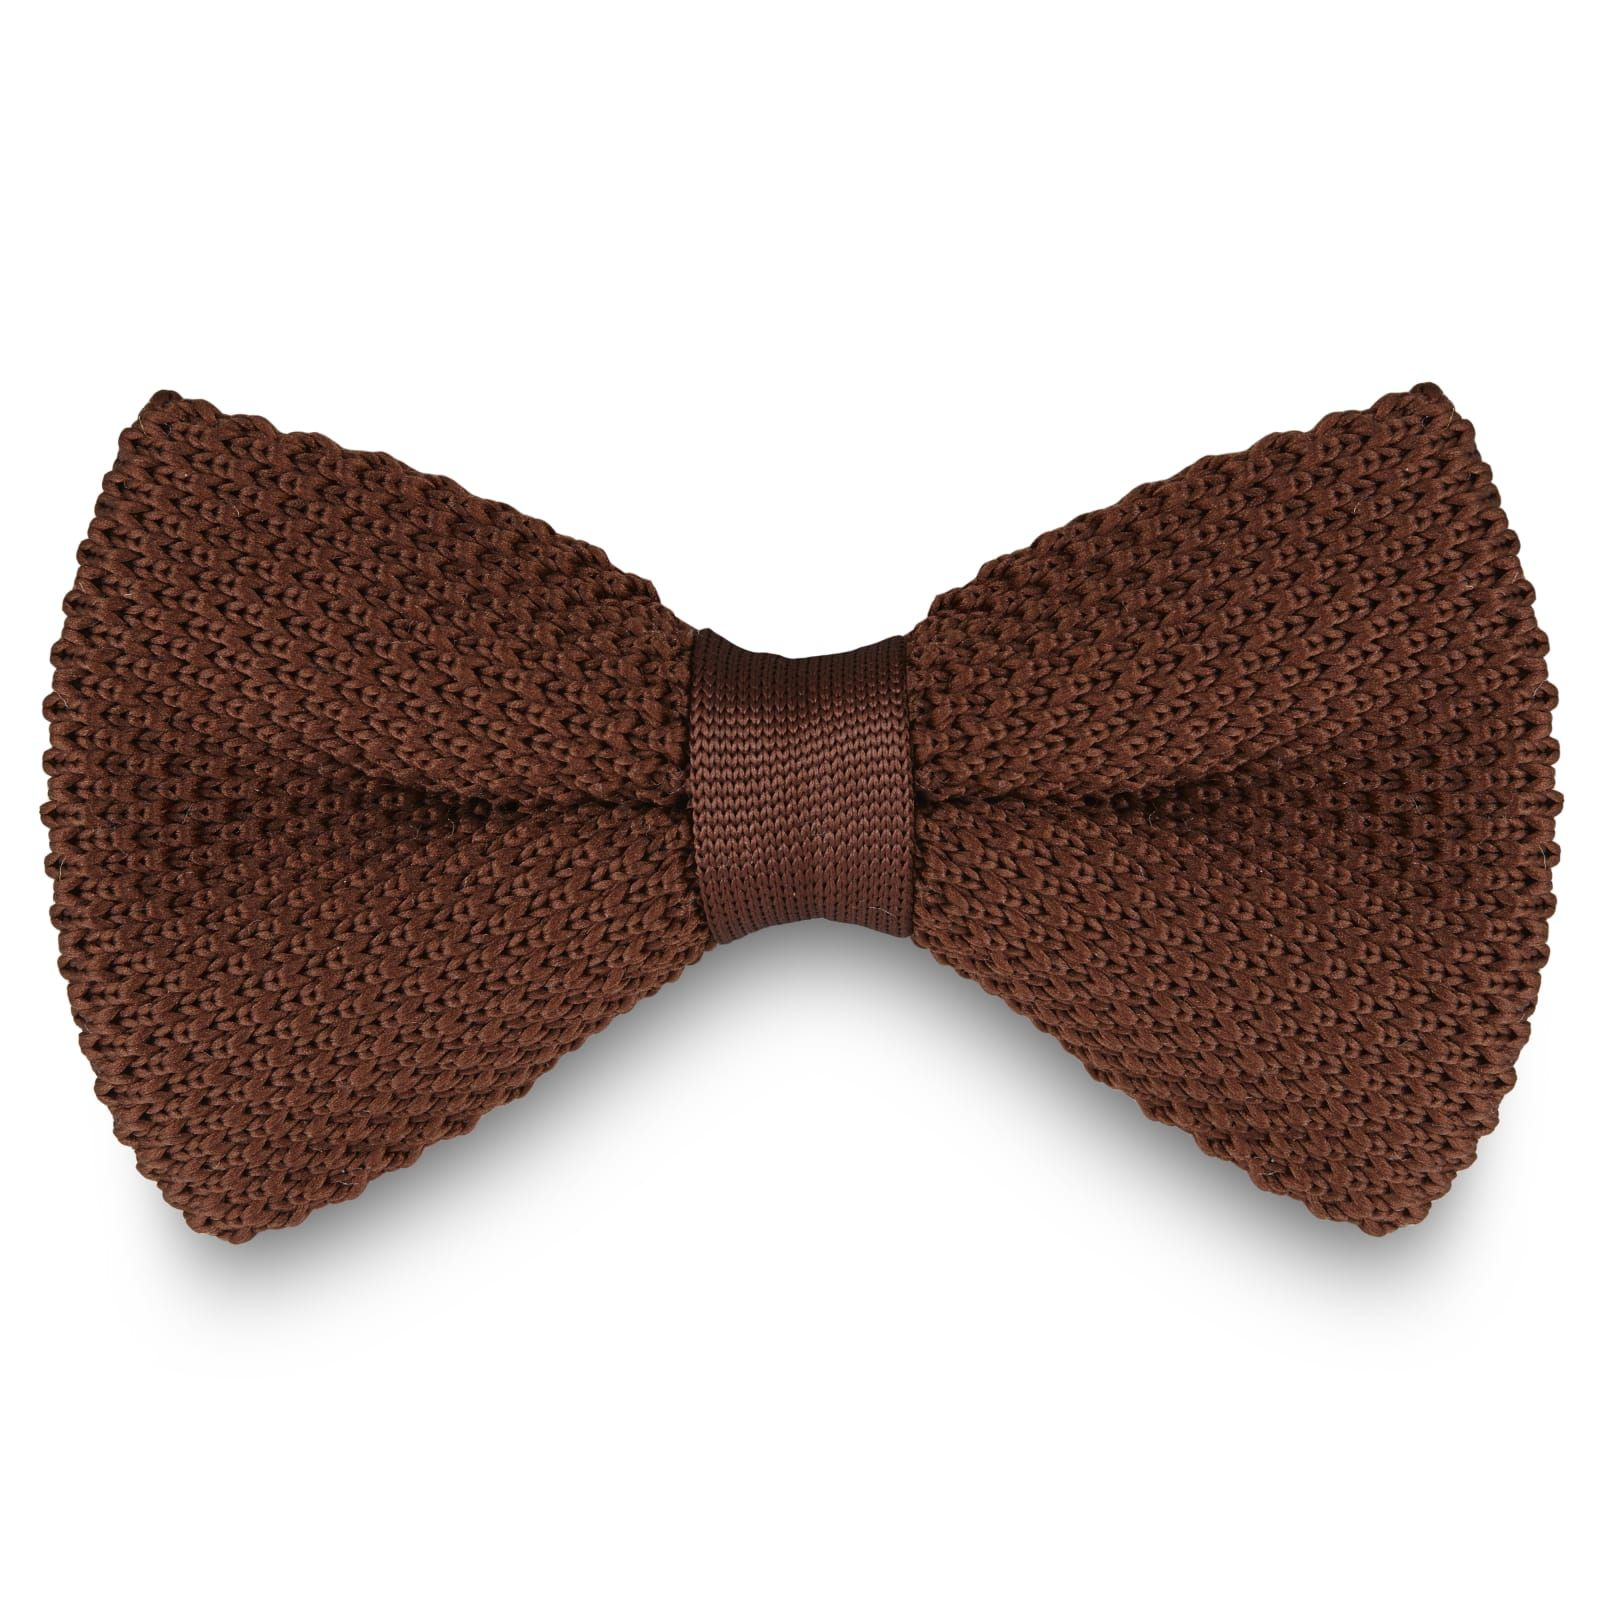 Photo of Chocolate Knitted Bow Tie | In stock! | Tailor Toki